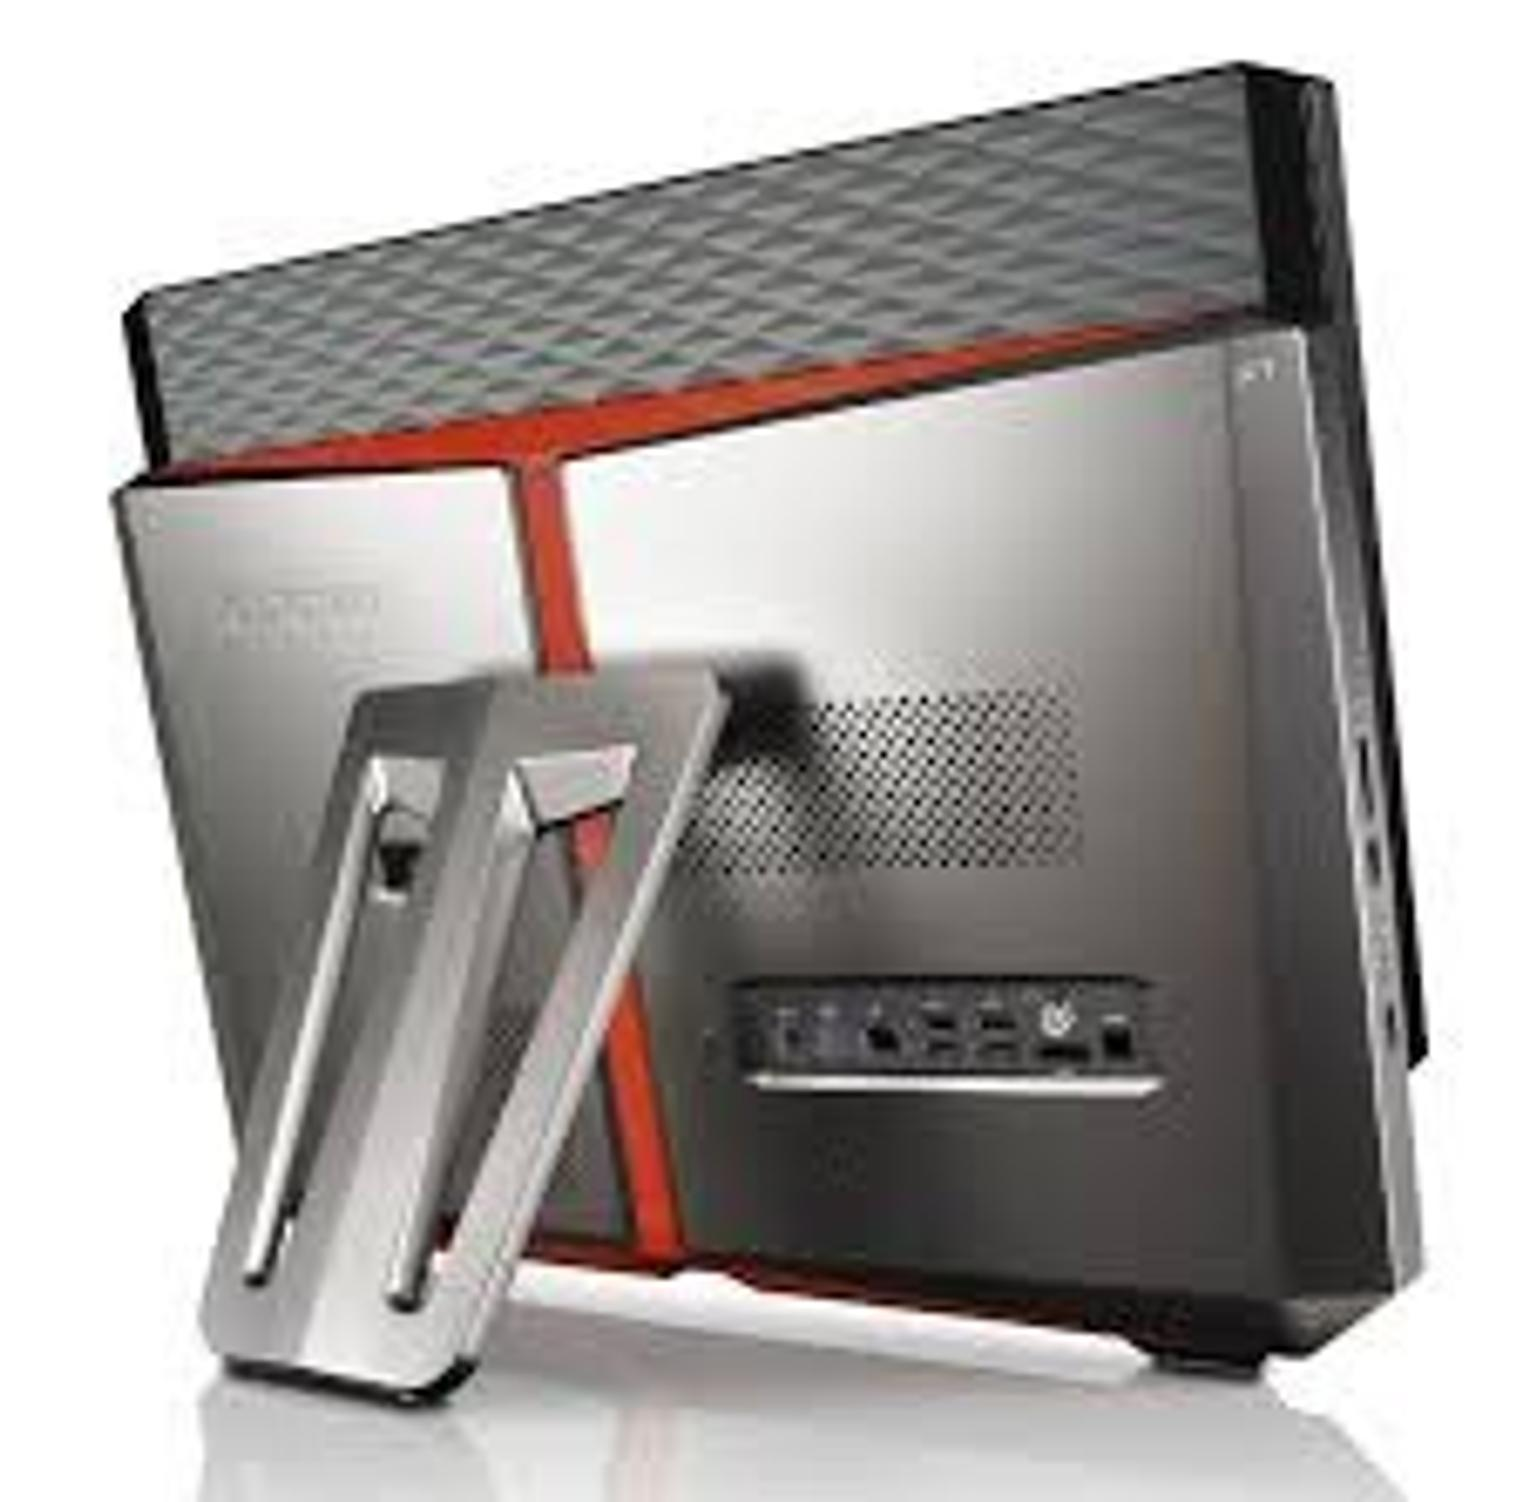 Lenovo B500 Idea Centre All in One Pc